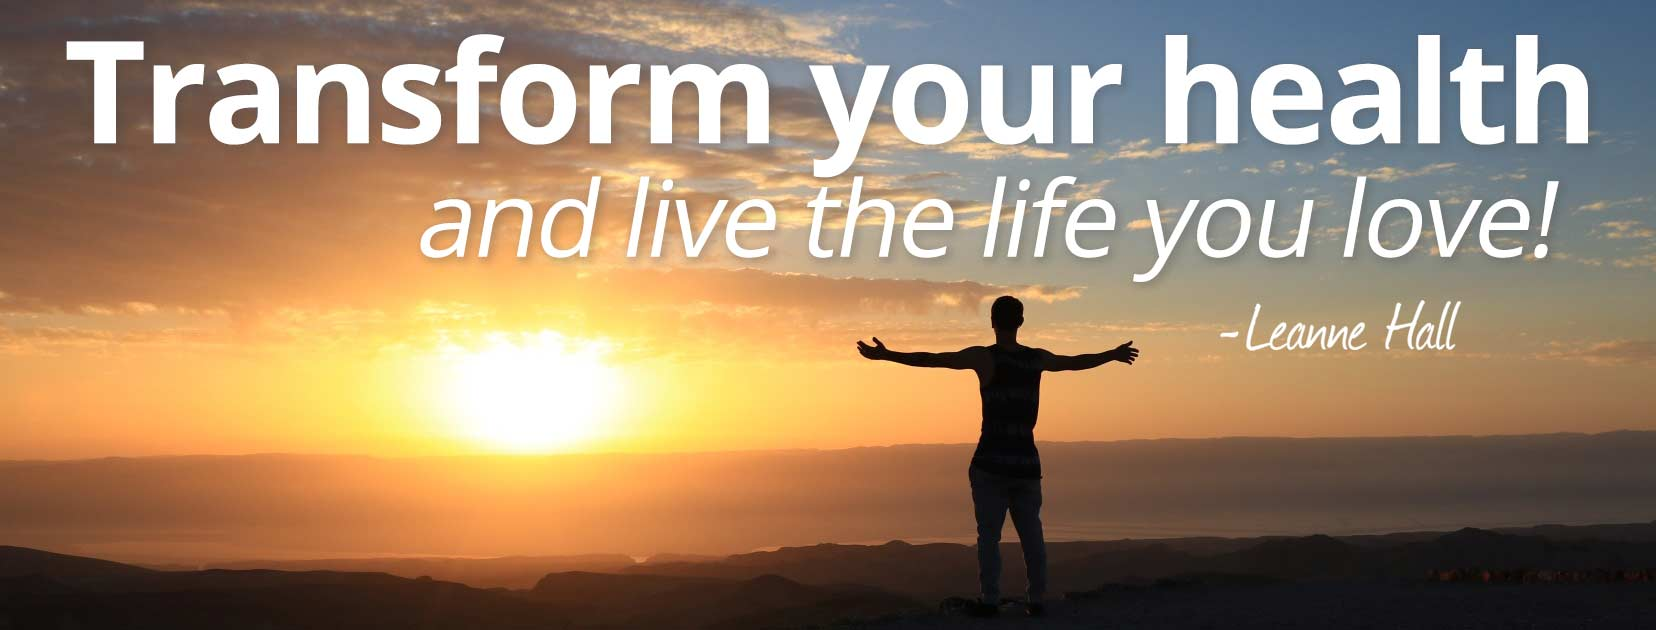 Transform your health and live the life you love